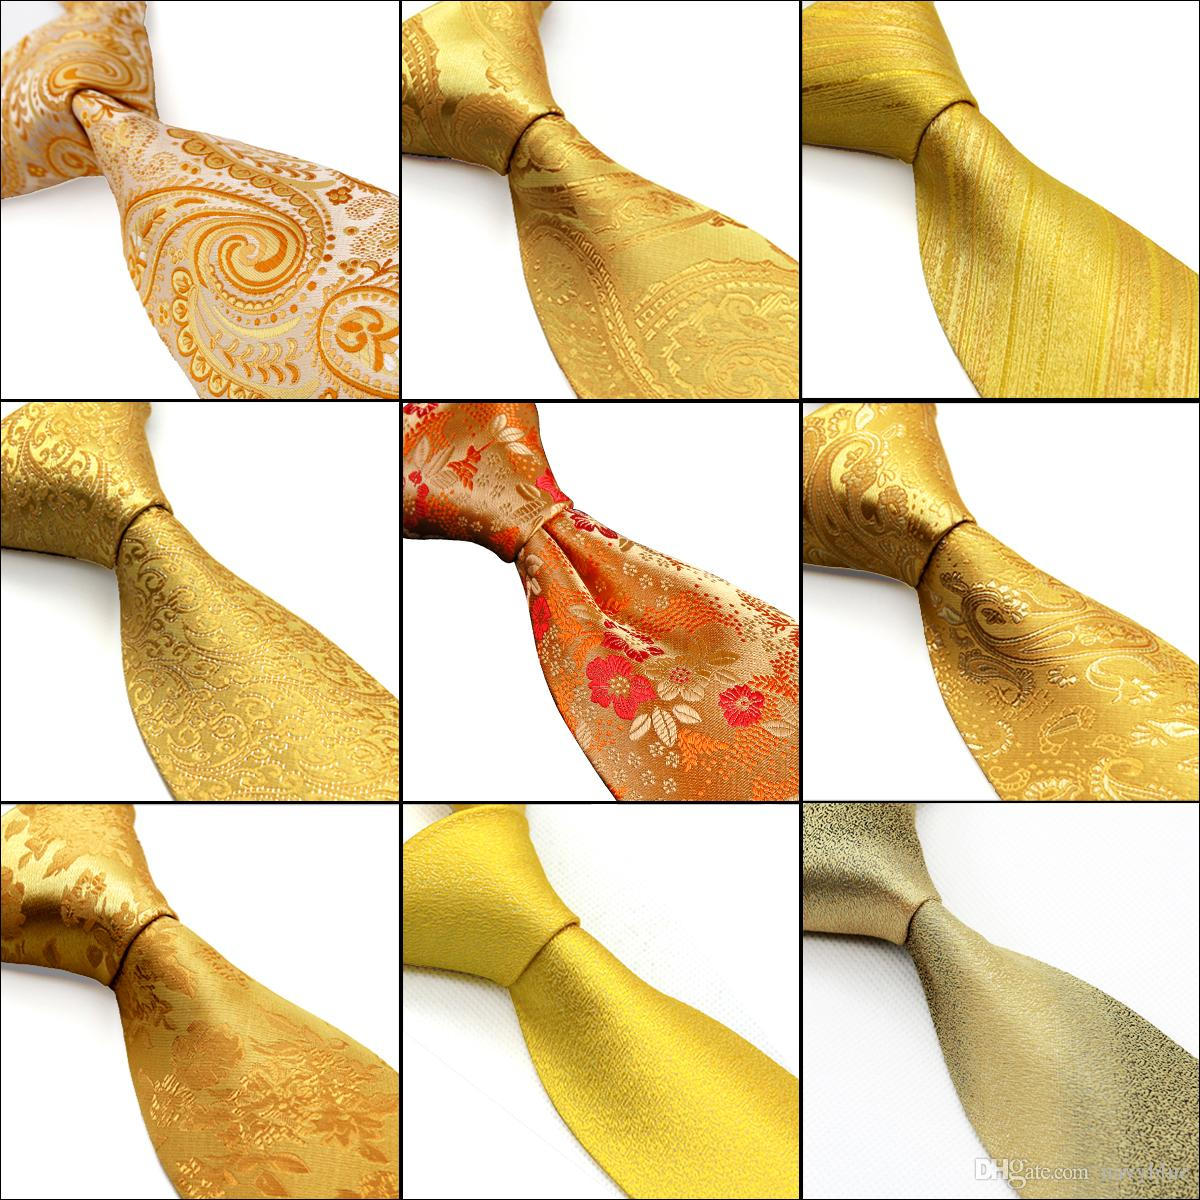 b9046c4cc410 Wholesale Gold Yellow Orange Mens Ties Neckties Paisley Floral Solid  Stripes 100% Silk Jacquard Woven Tie Sets Pocket Square Tie Bar Tie A Tie  From Navyblue ...